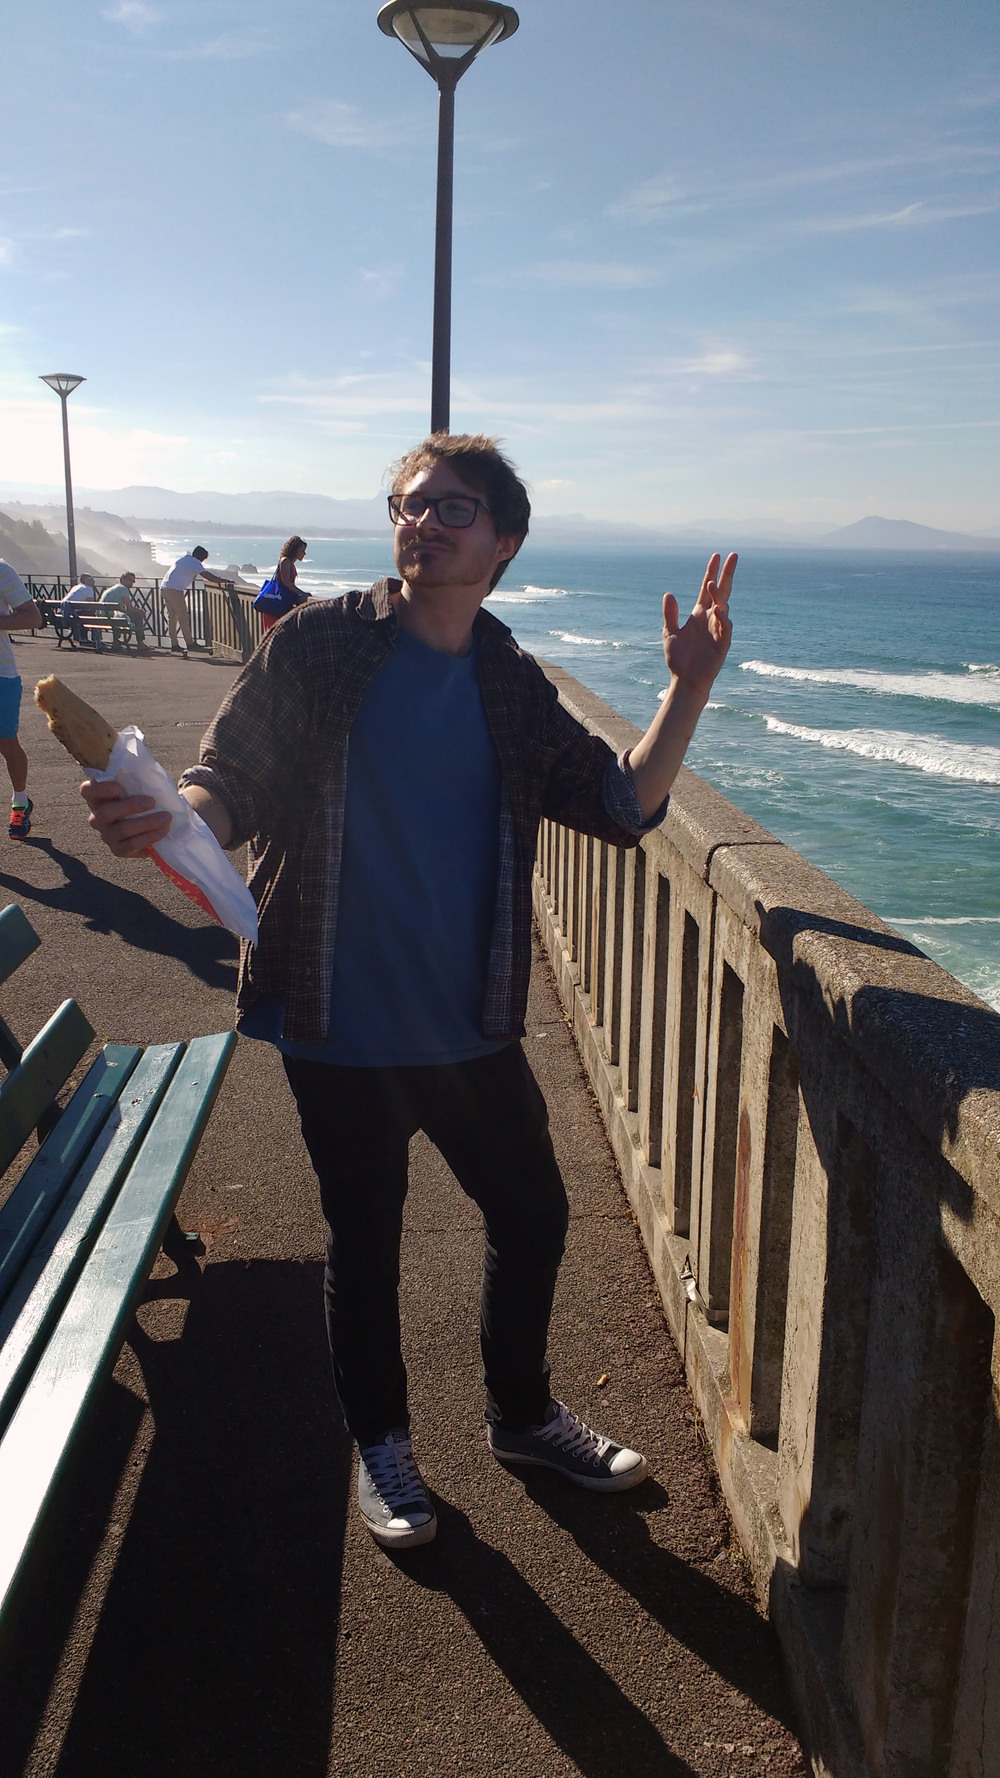 Thomas with Baguette, Biarritz